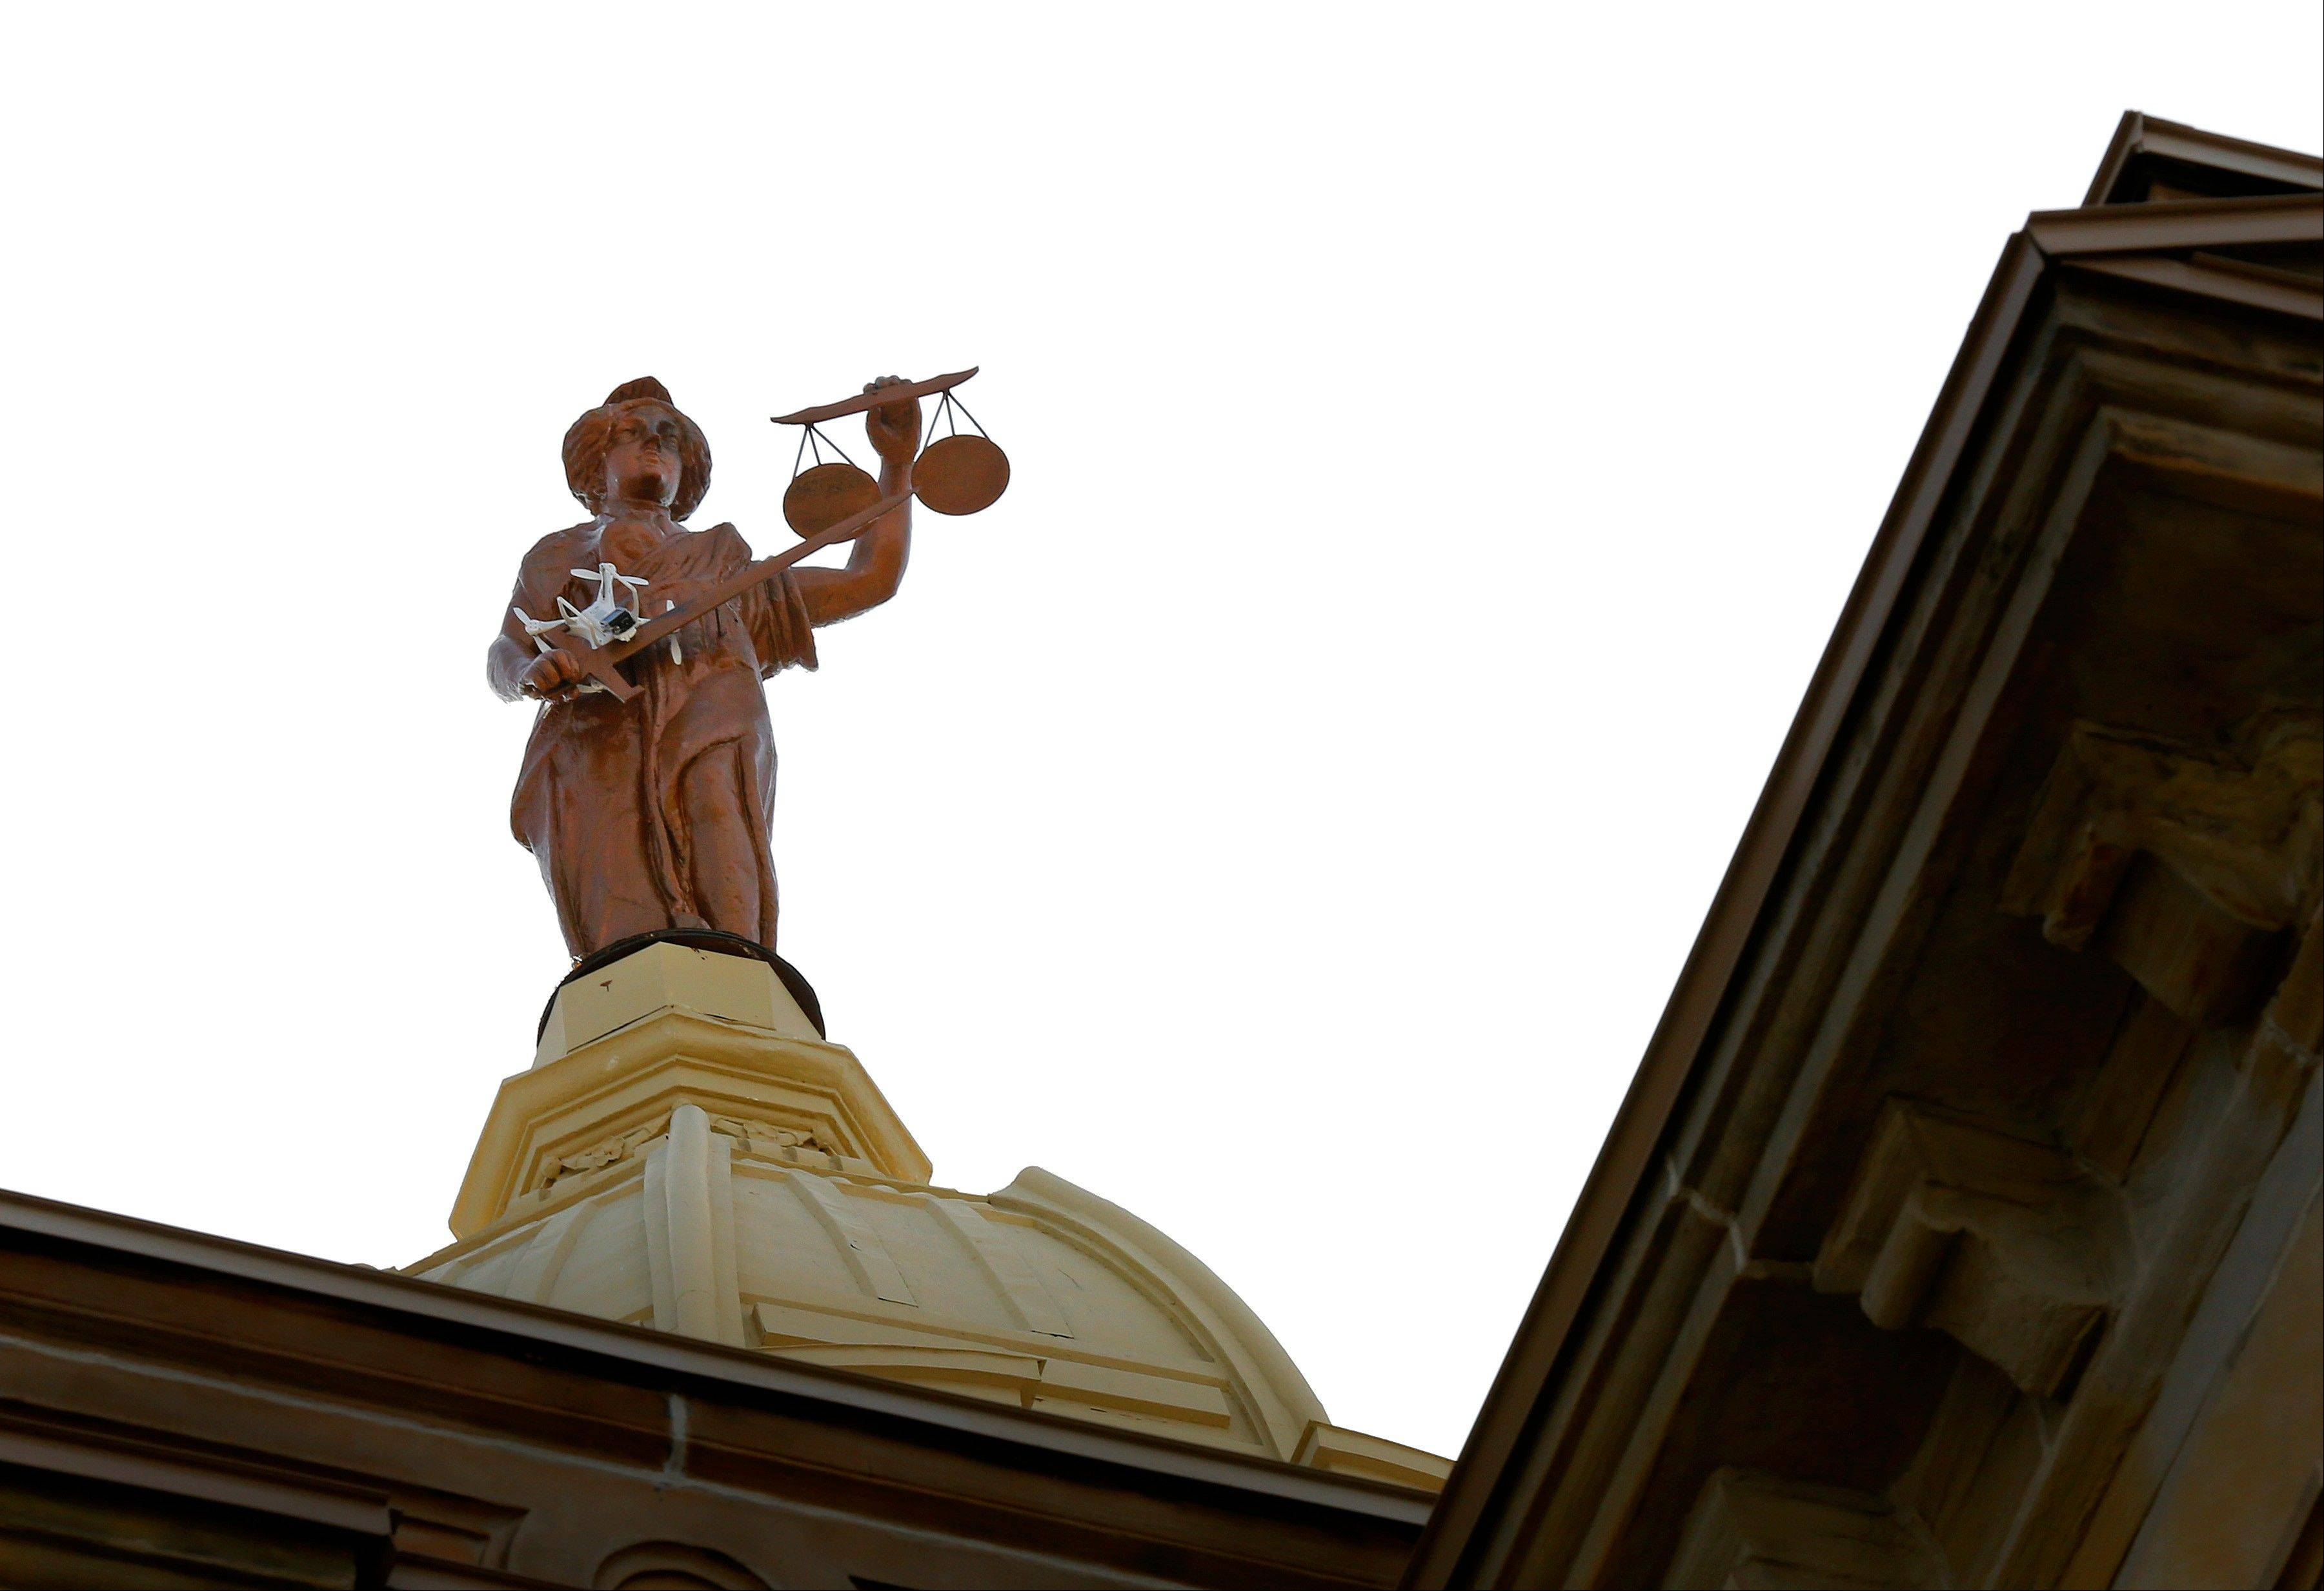 Terry Cline's drone camera sits stuck in the arm of the Lady Justice statue Thursday atop the Marion County Courthouse. The remote-control helicopter got stuck while he was filming a project.